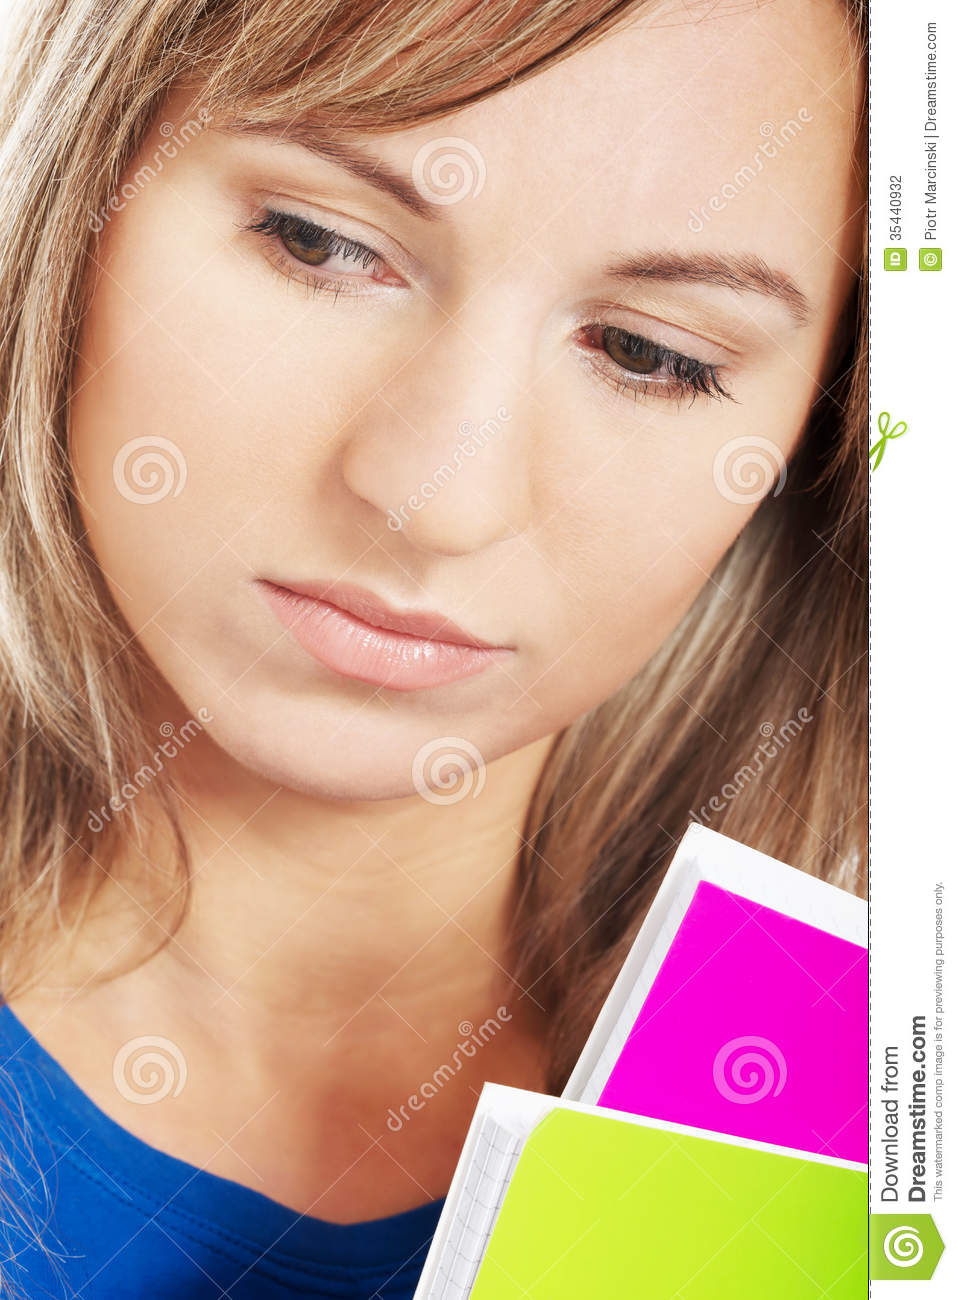 Close Up On Young Sad Student. Stock Photo - Image: 35440932